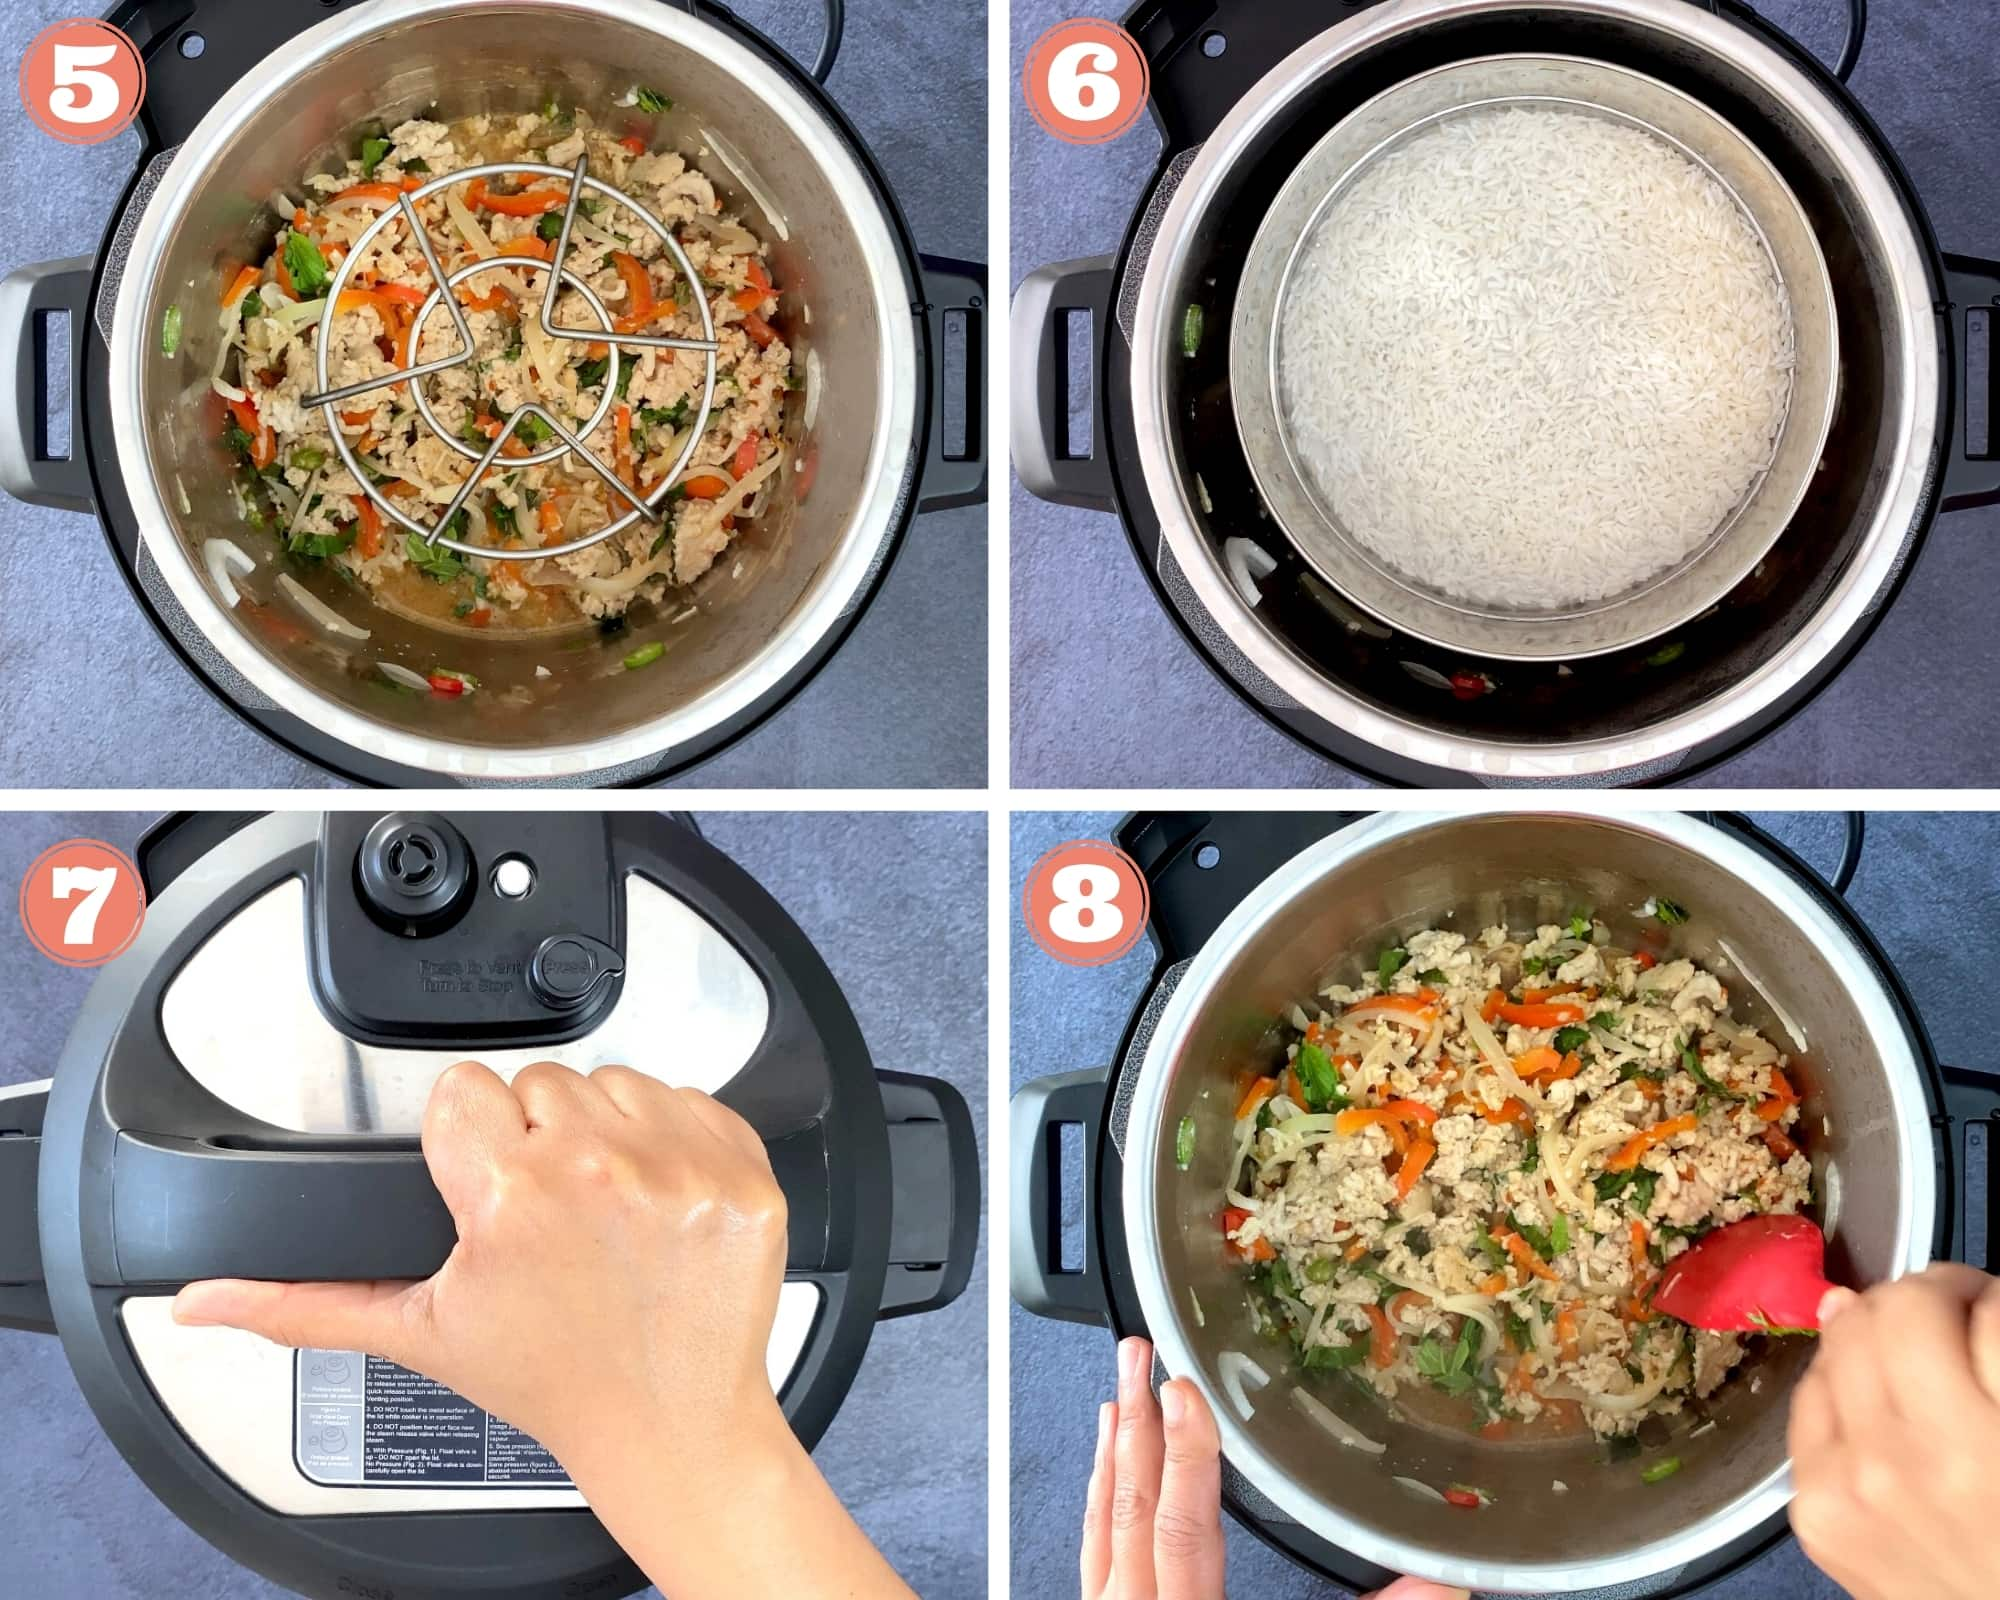 Instructions for Thai basil chicken